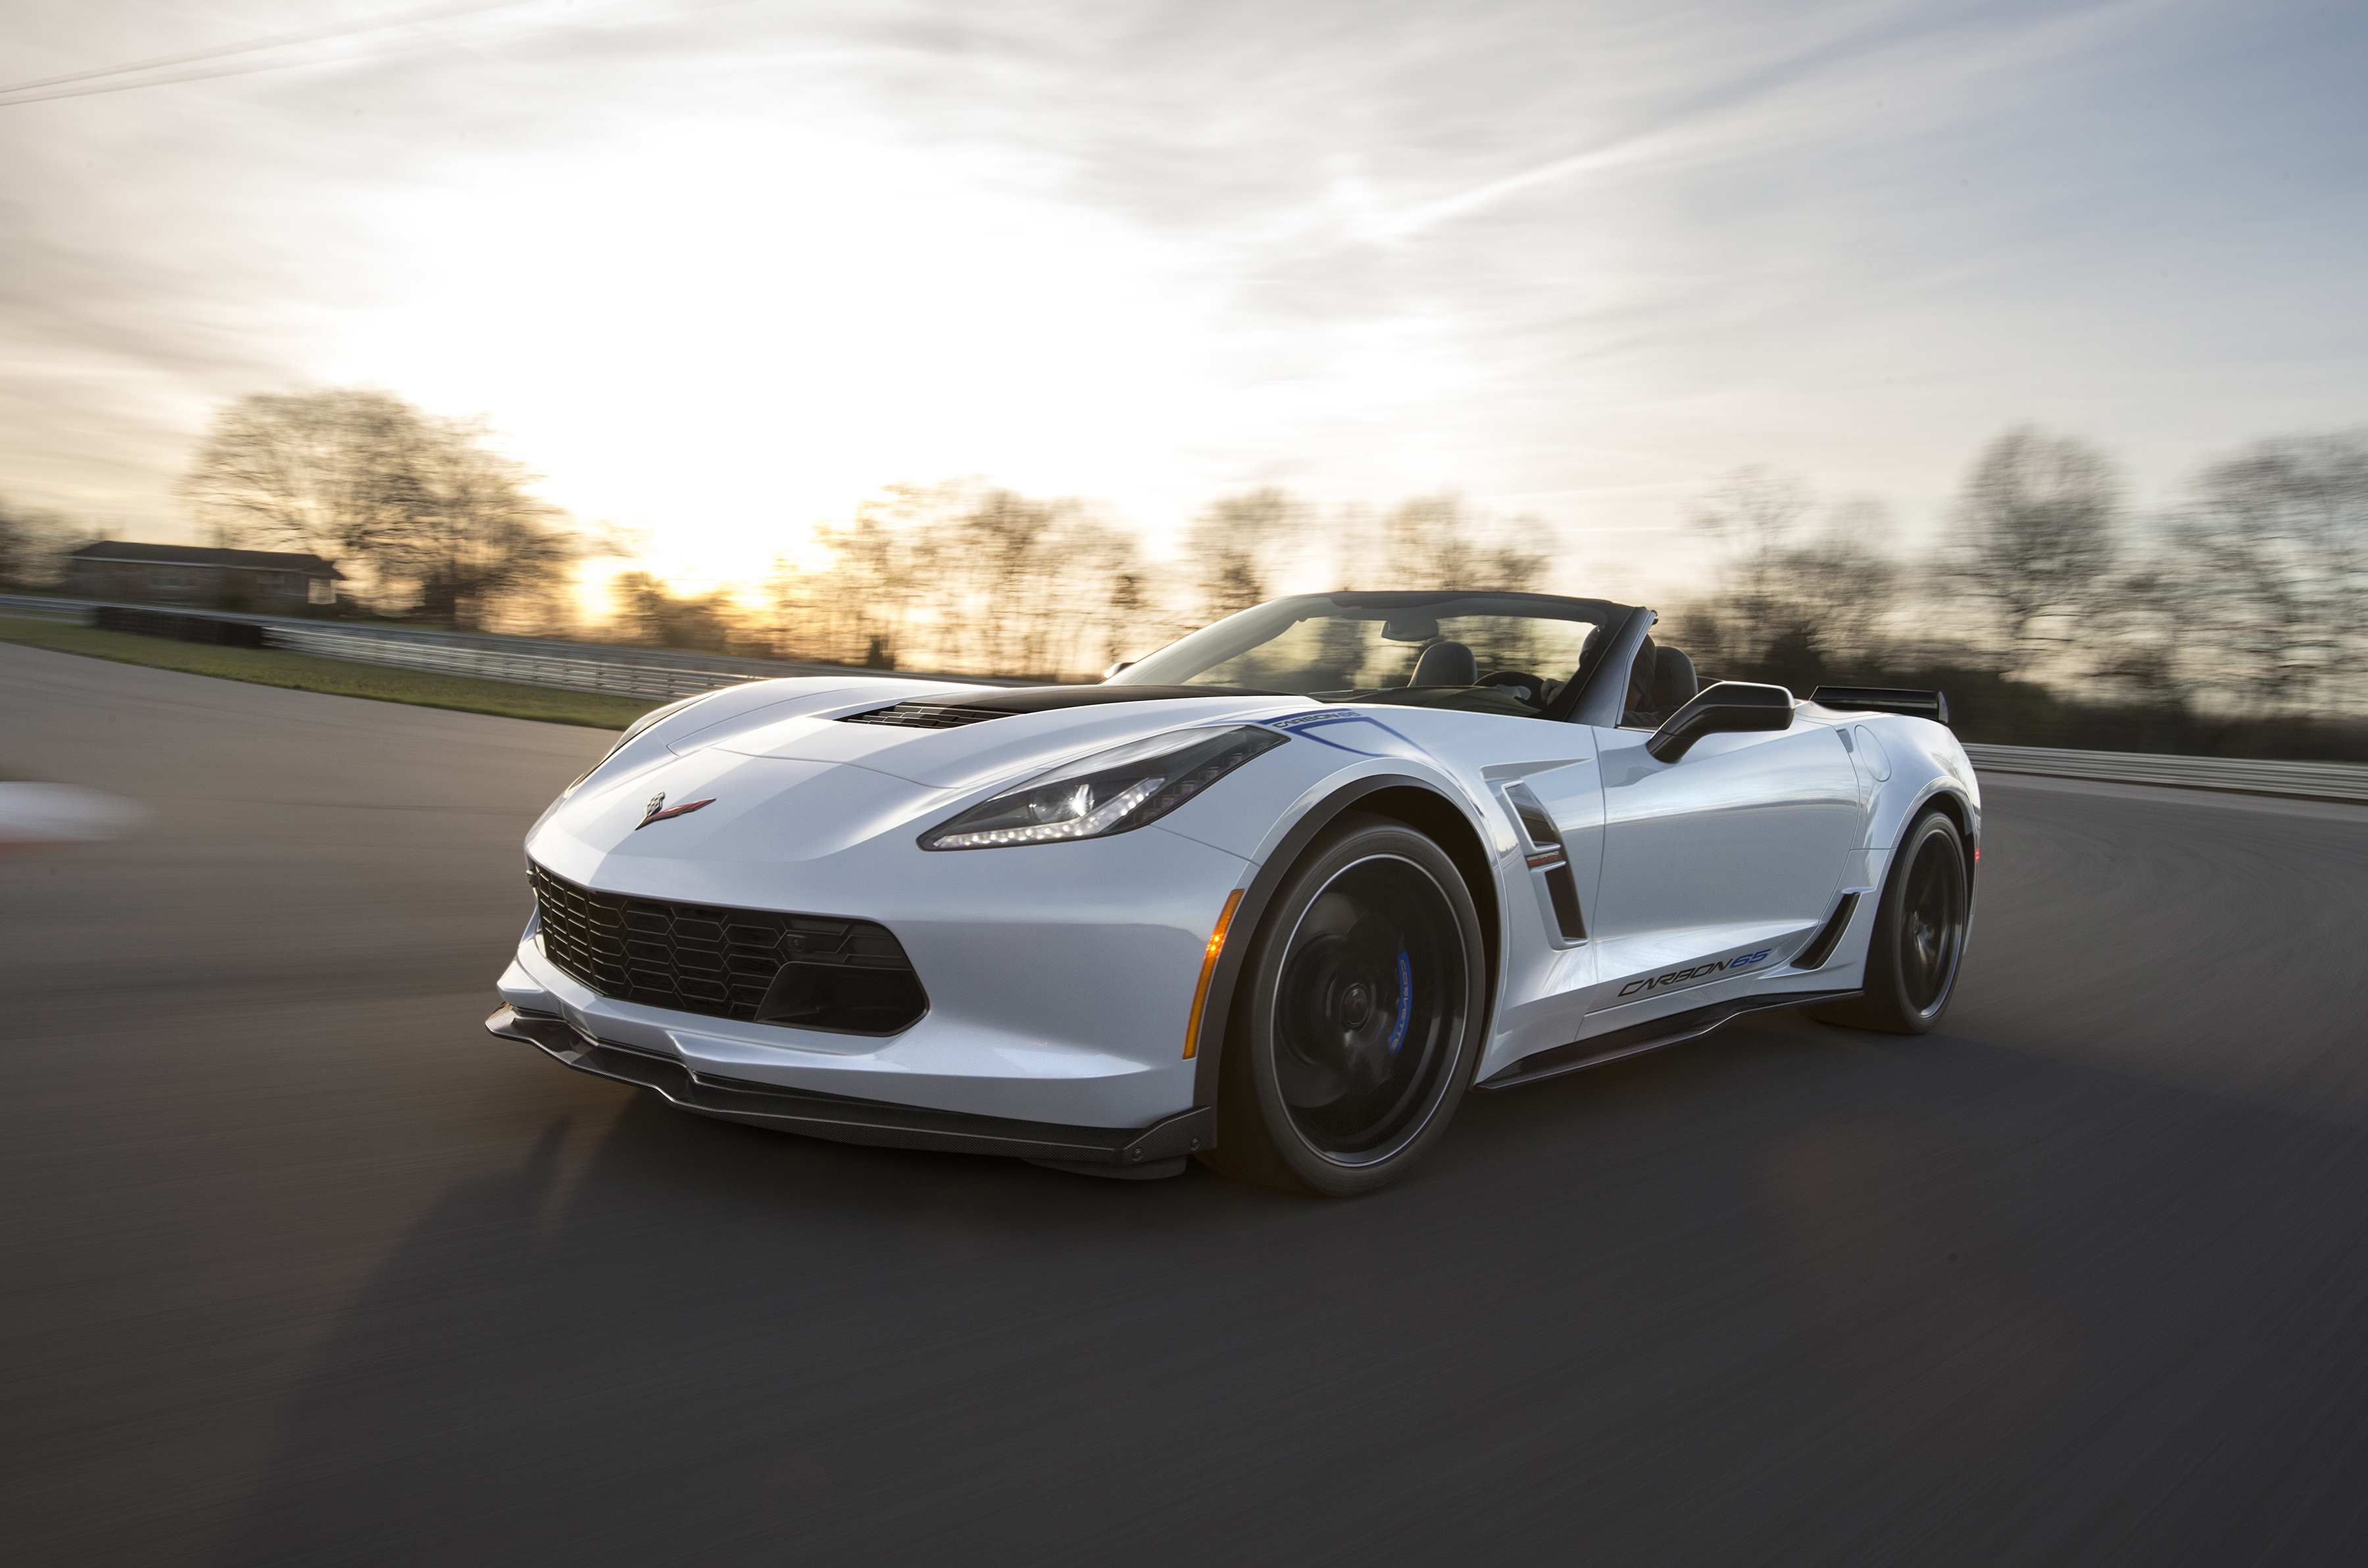 Available On The Grand Sport 3lt Trim Carbon 65 Edition Celebrates Years Of Corvette With A New Ceramic Matrix Gray Paint Color And Visible